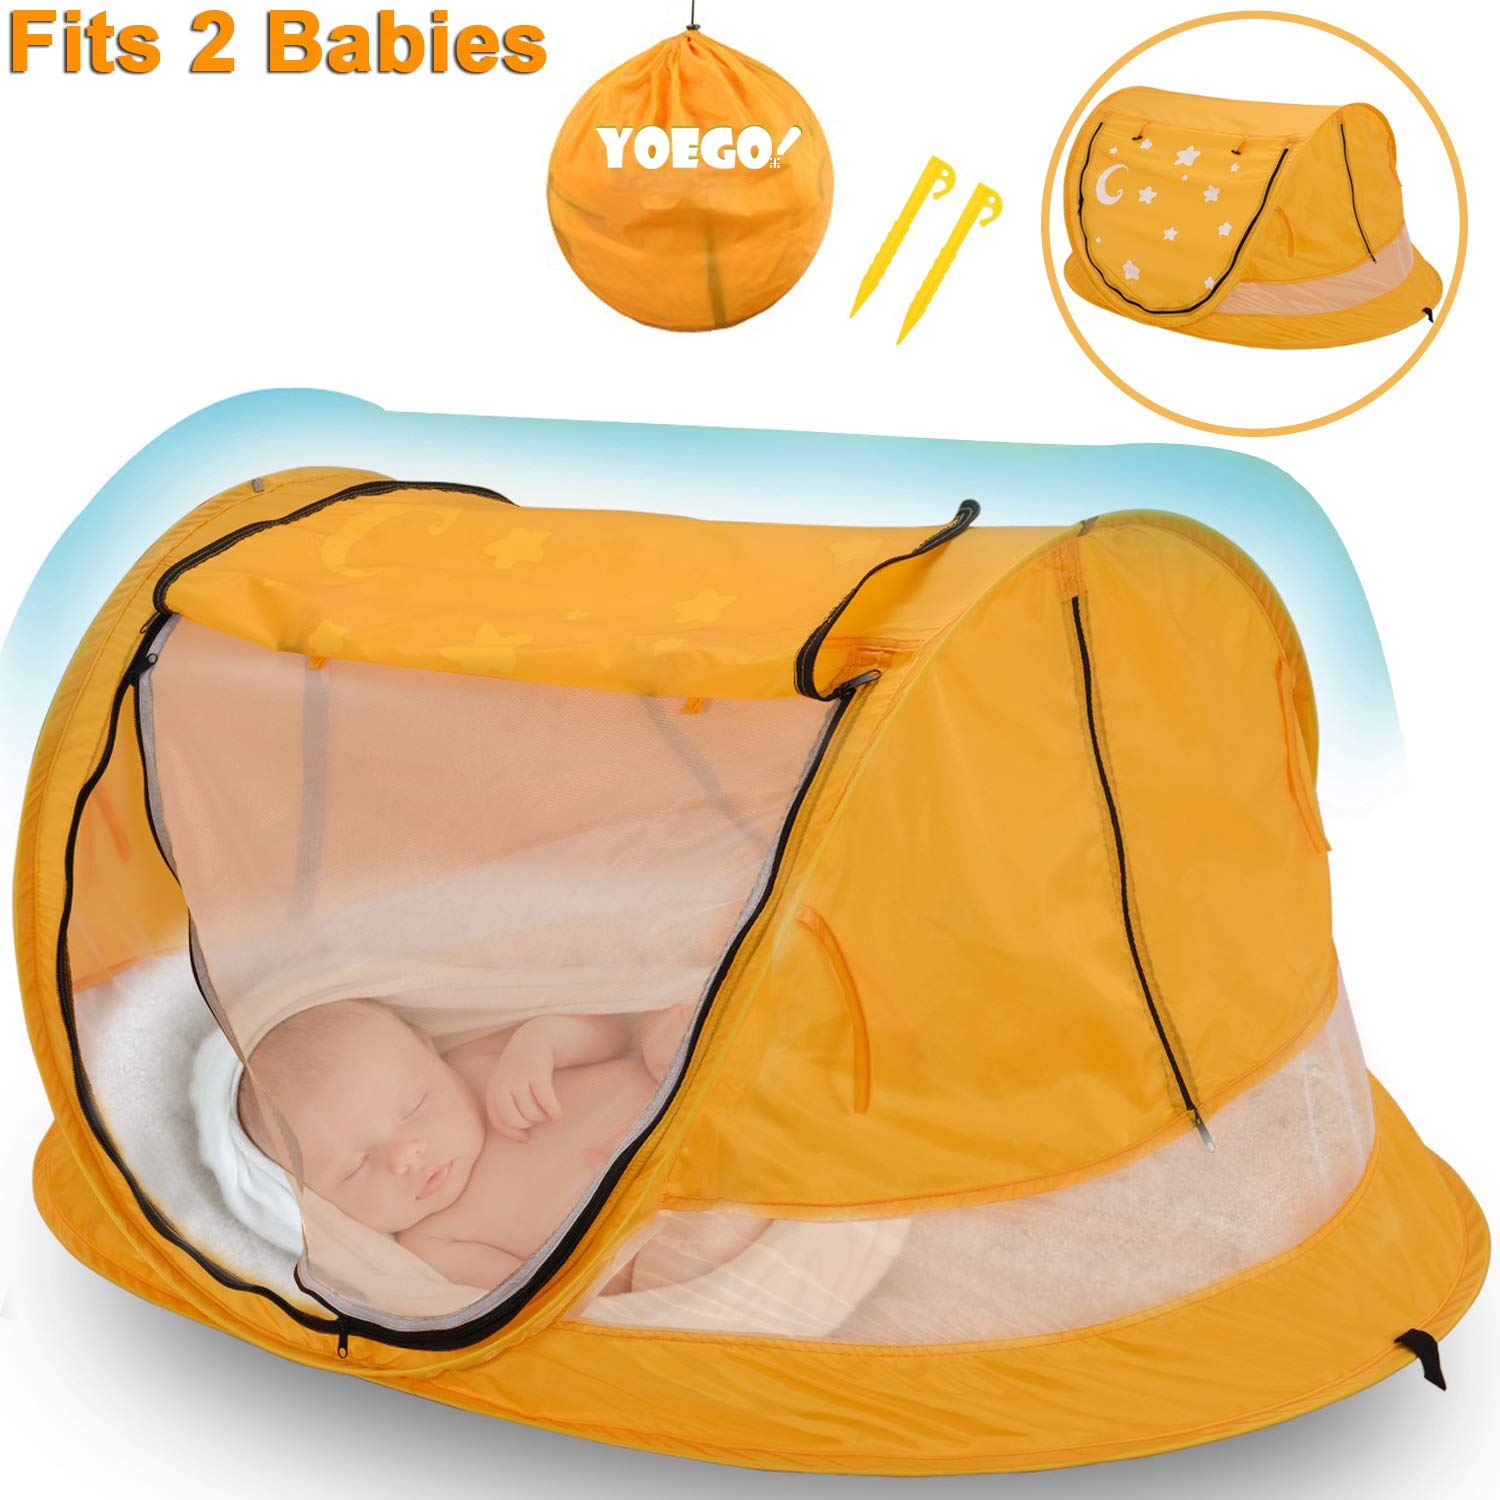 Baby Beach Tent, Yoego Large 53 x35 x23 Portable Baby Pop-Up Travel Tent, UPF 50 Sun Shelters Shade, Baby Travel Crib with Mosquito Net, No Pad